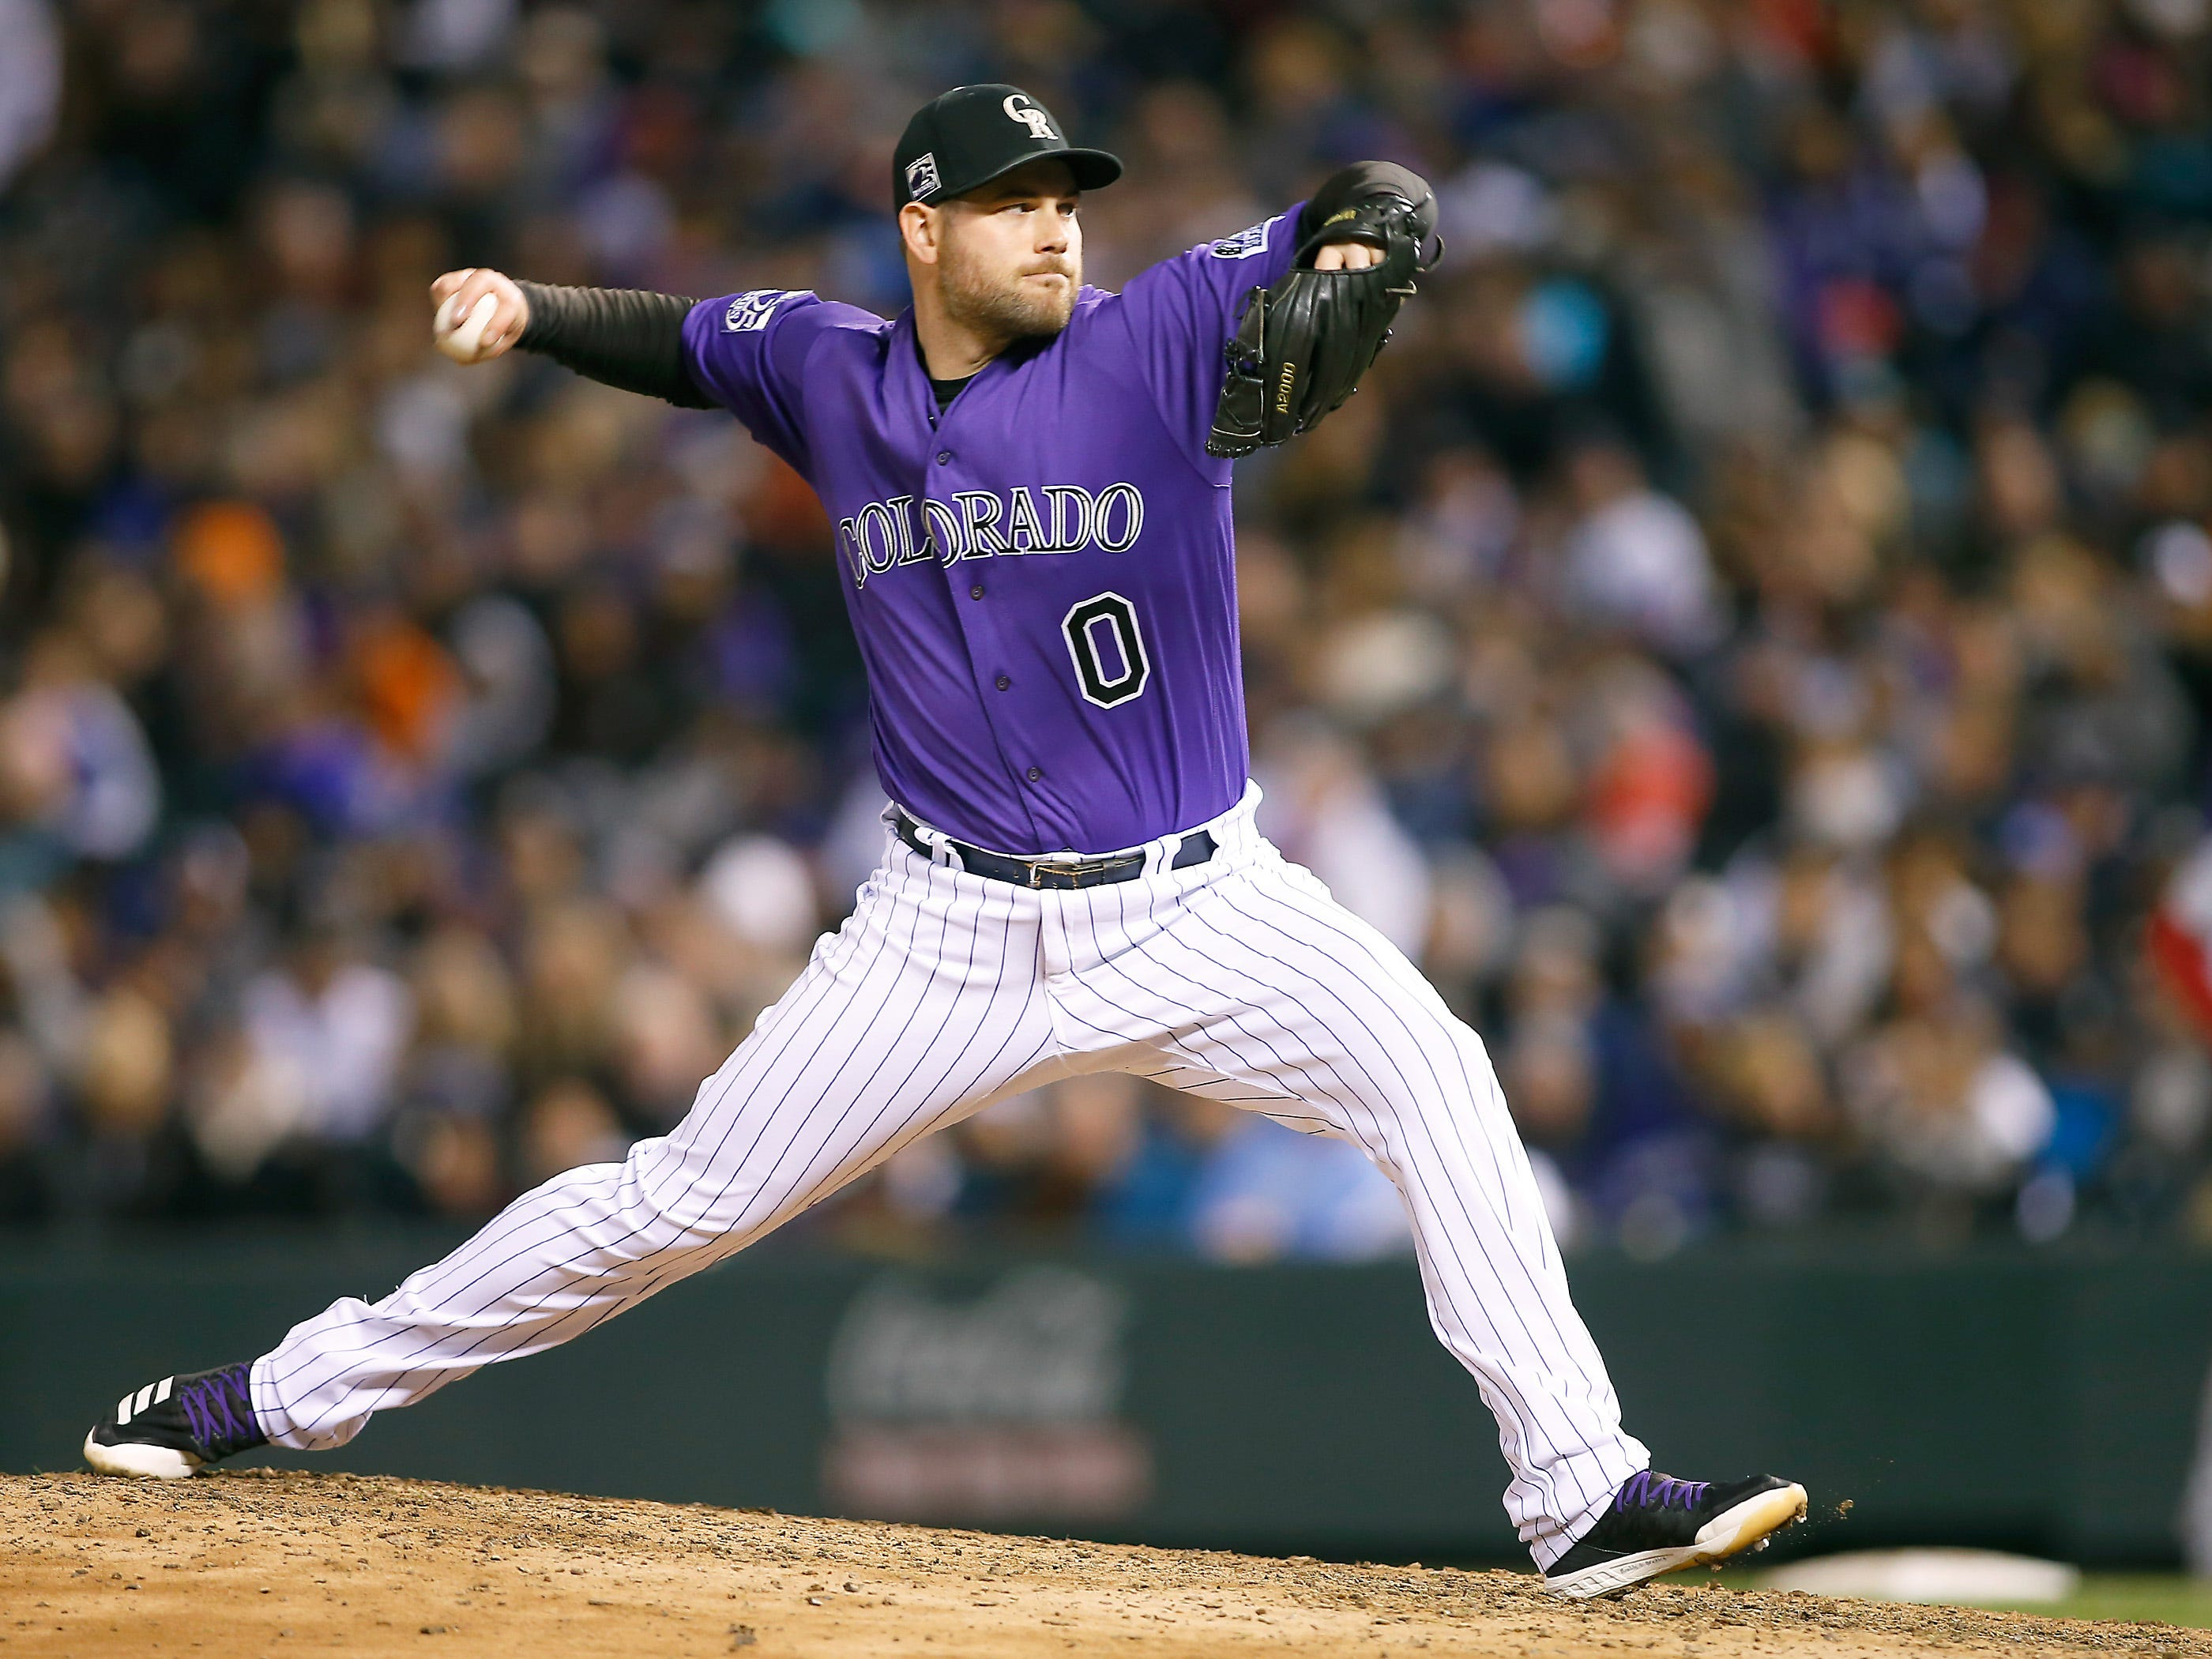 Adam Ottavino (33, RHP, Rockies)